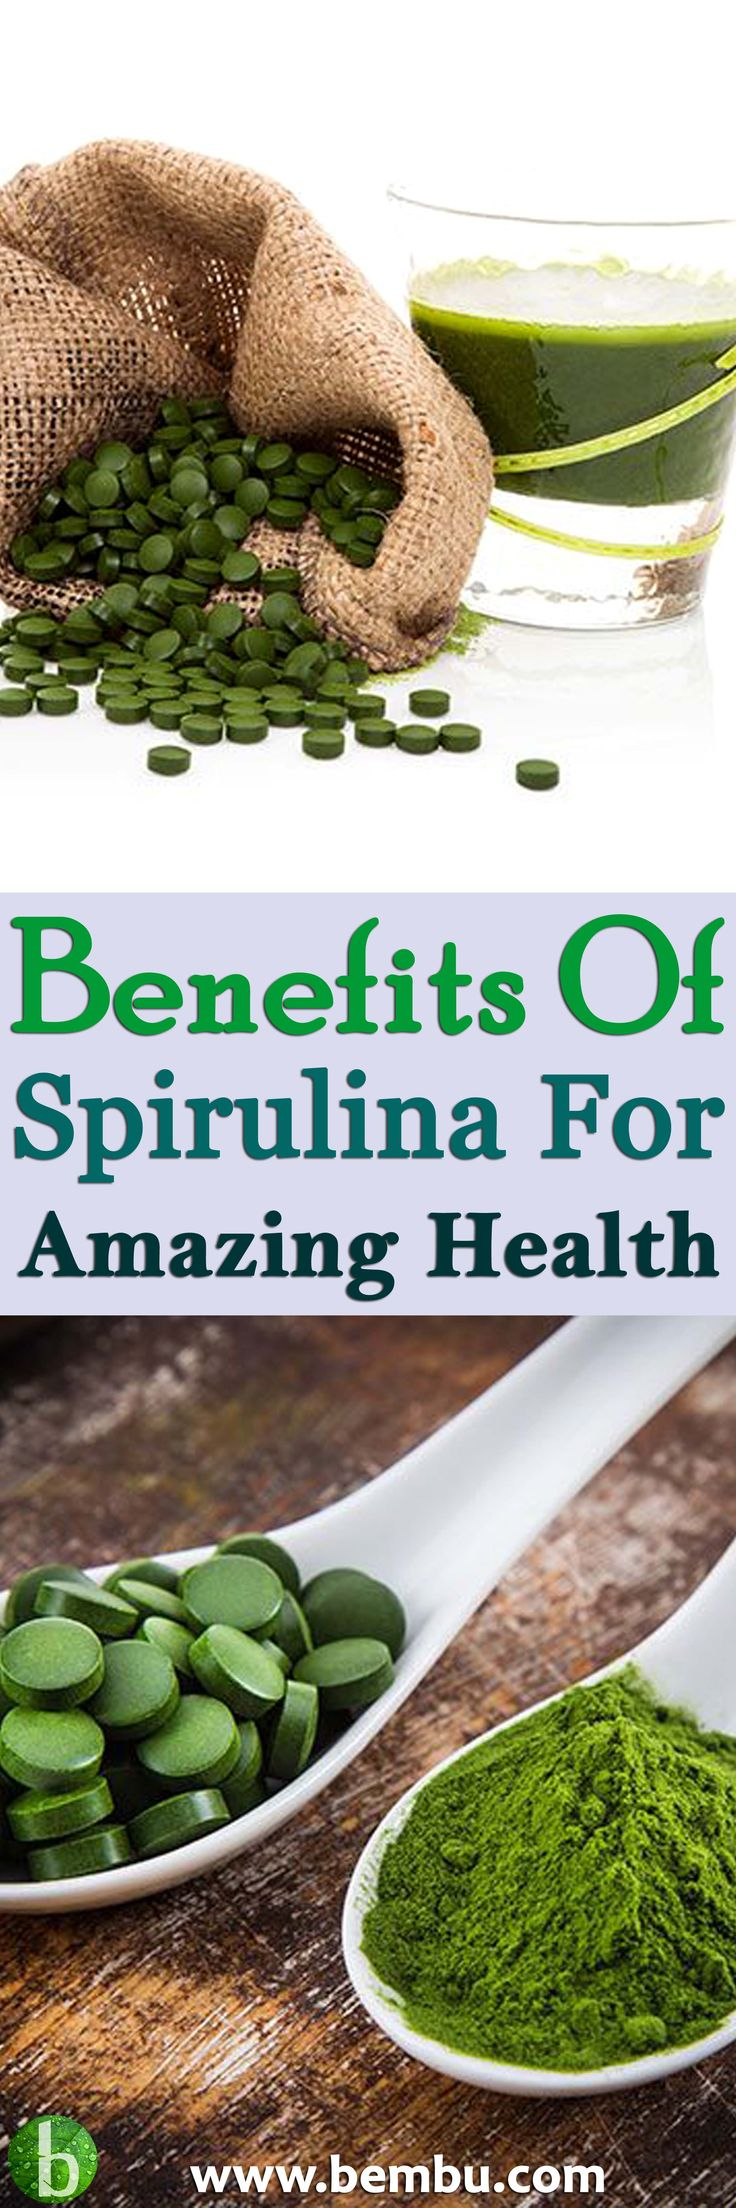 You might have heard of spirulina. This blue-green cyanobacteria became famous after being successfully used by NASA ... Health Tips │ Health Ideas │Healthy Food │Health │Food │Drinks │Healthy Oil │Healing │Natural Remedies #Health #Ideas #Tips #Healthyfood #Food #Vitamin #Healing #Drinks #Remedies #Healthyoil